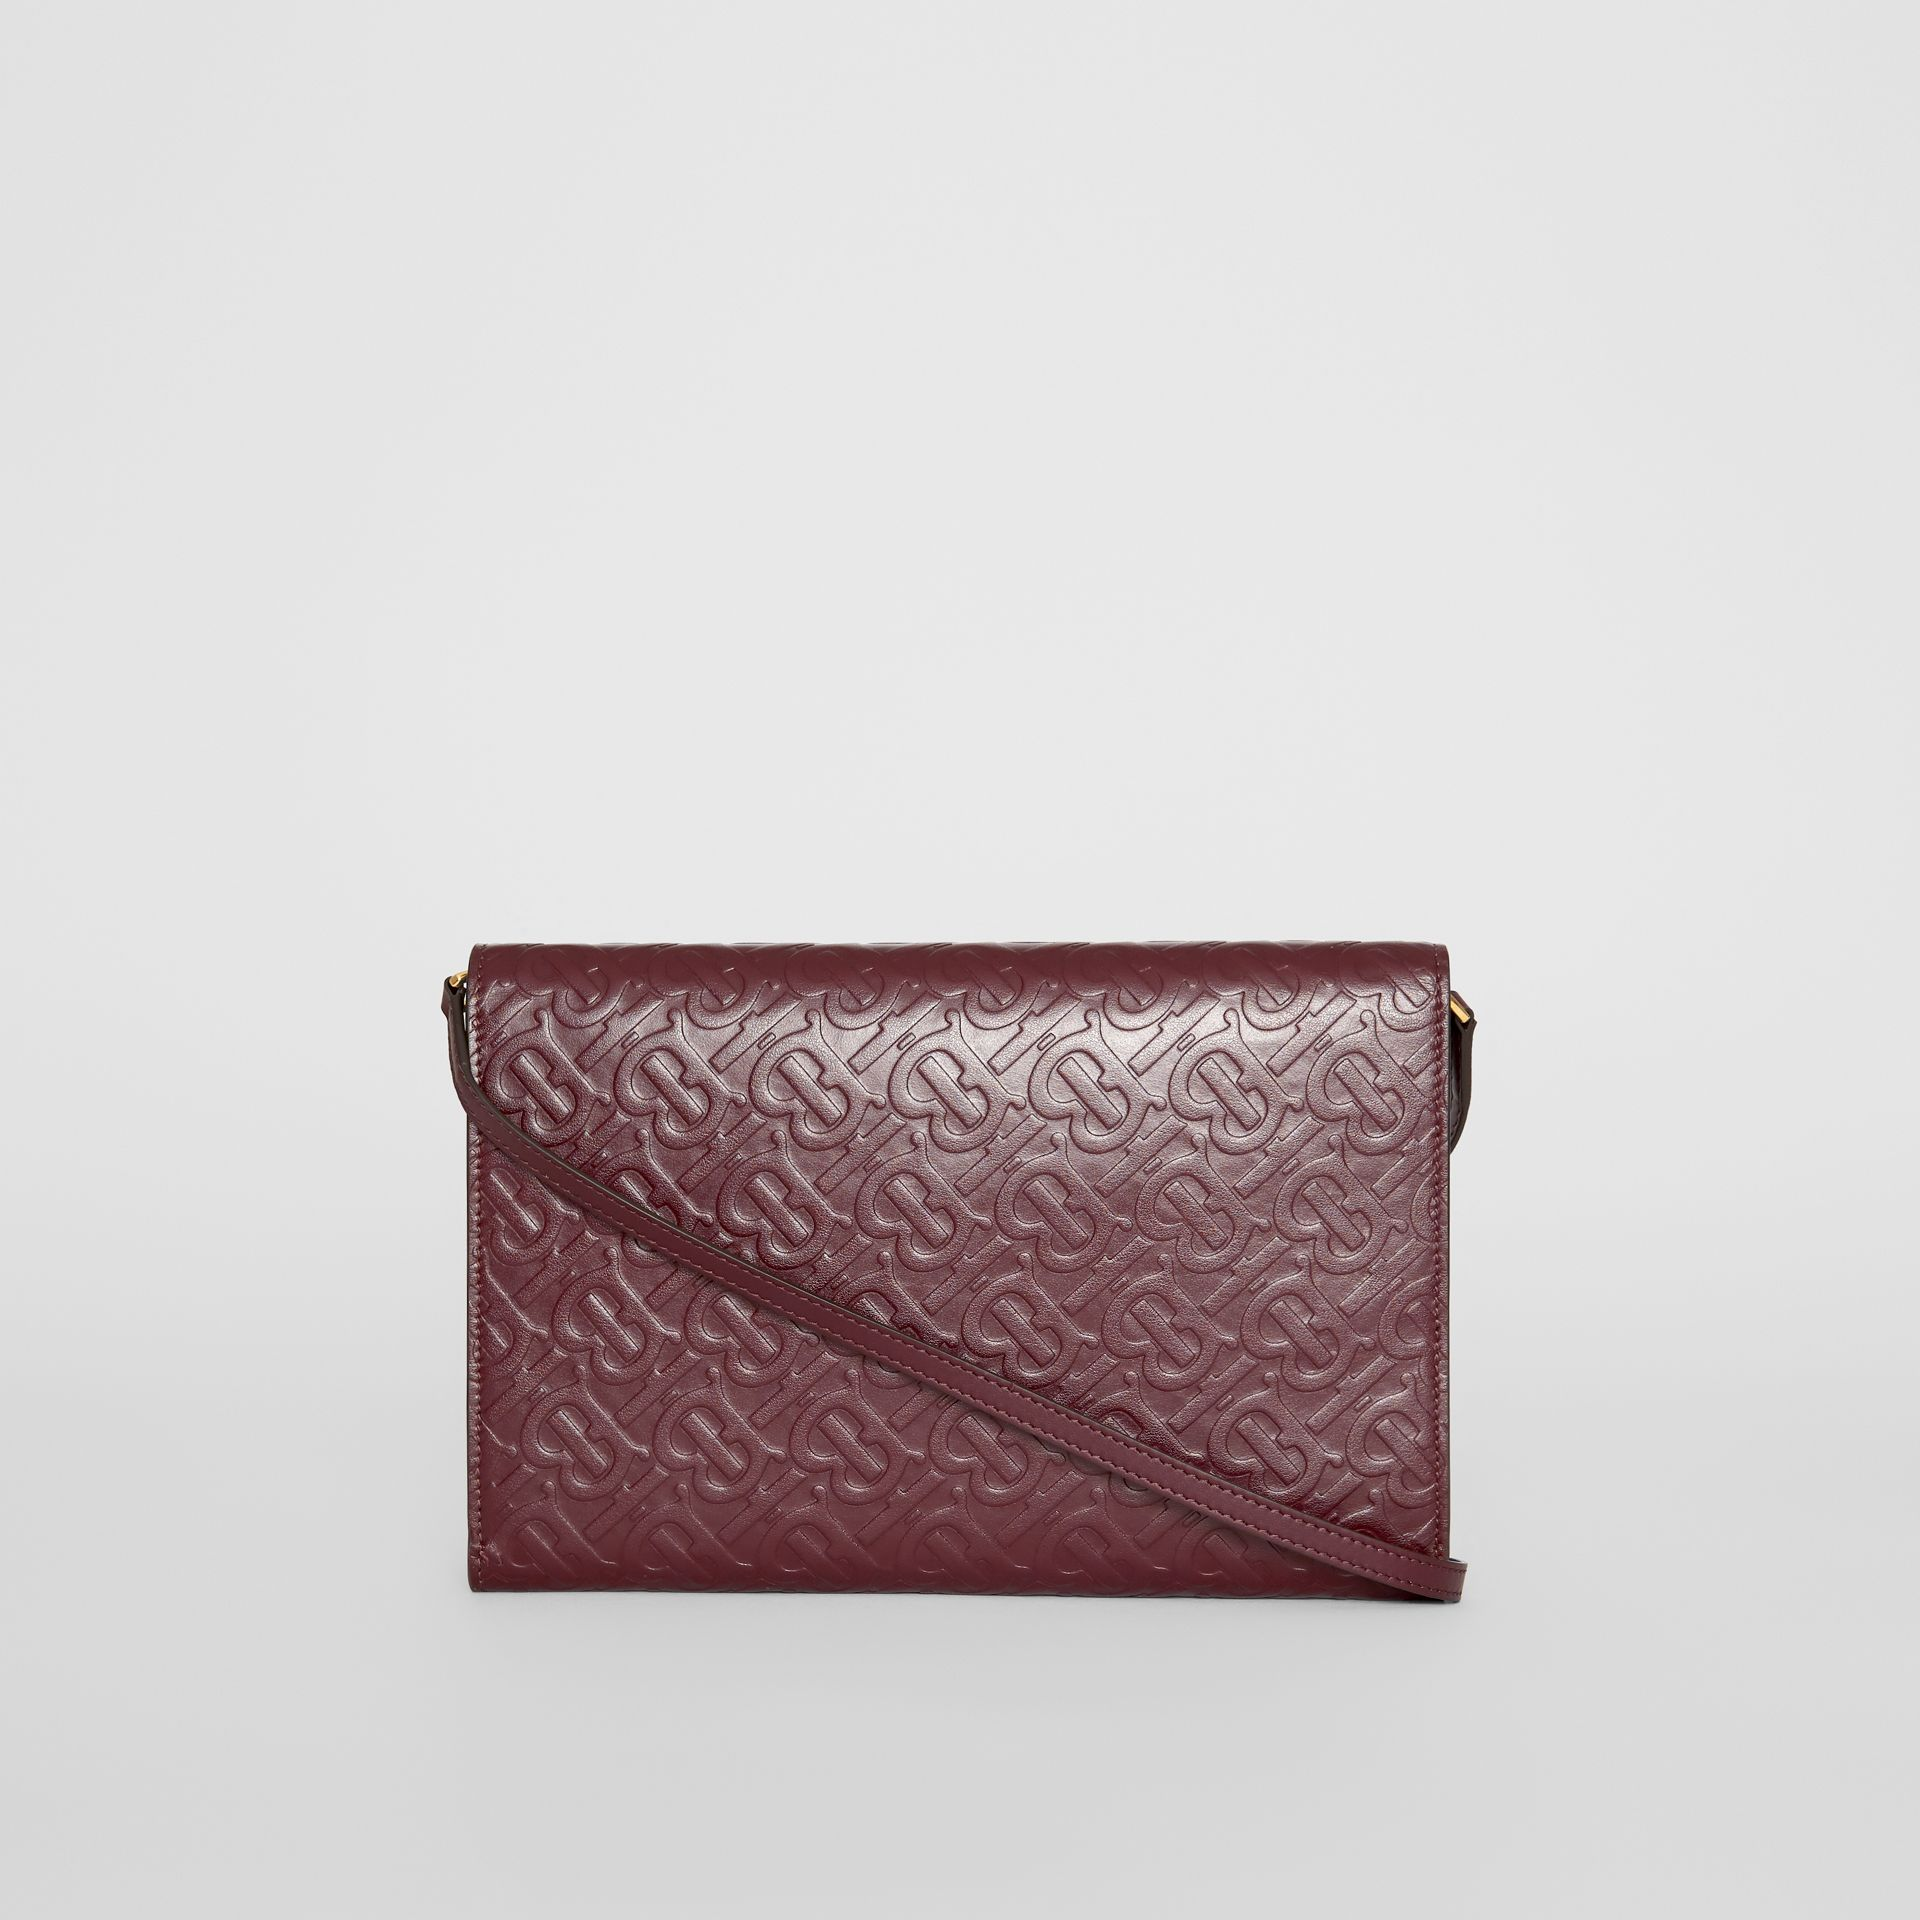 Monogram Leather Bag with Detachable Strap in Oxblood - Women | Burberry United States - gallery image 5